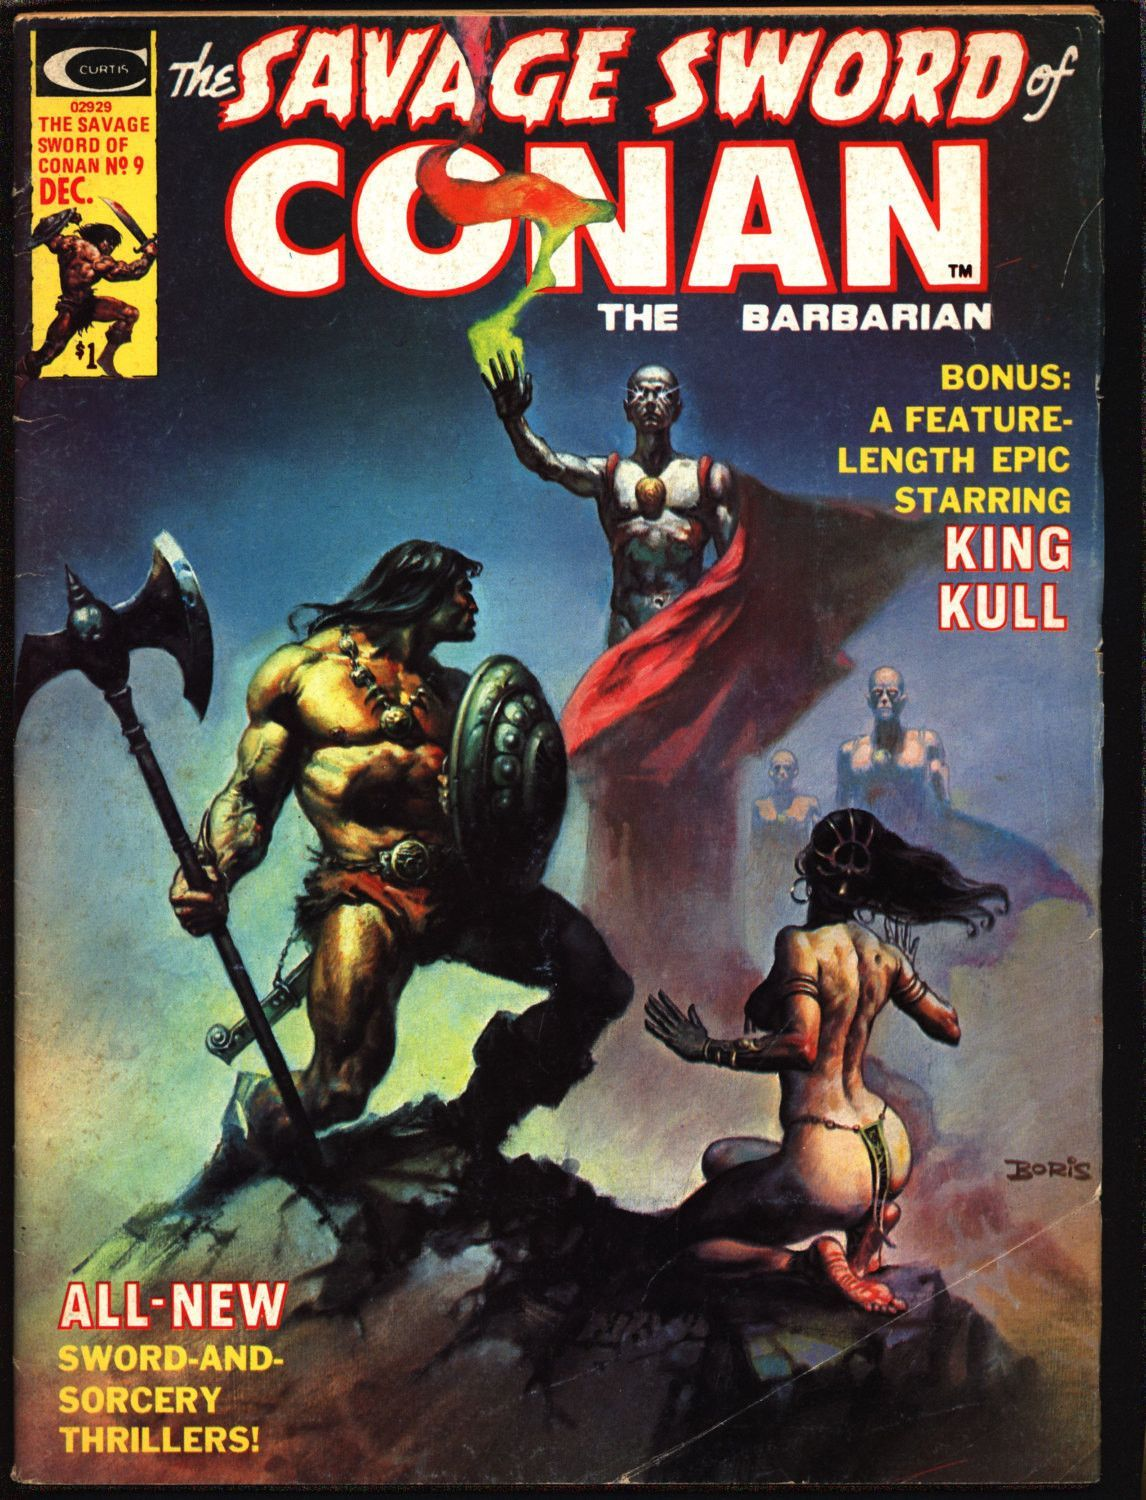 The varying shades of justice in conan the barbarian by robert e howard